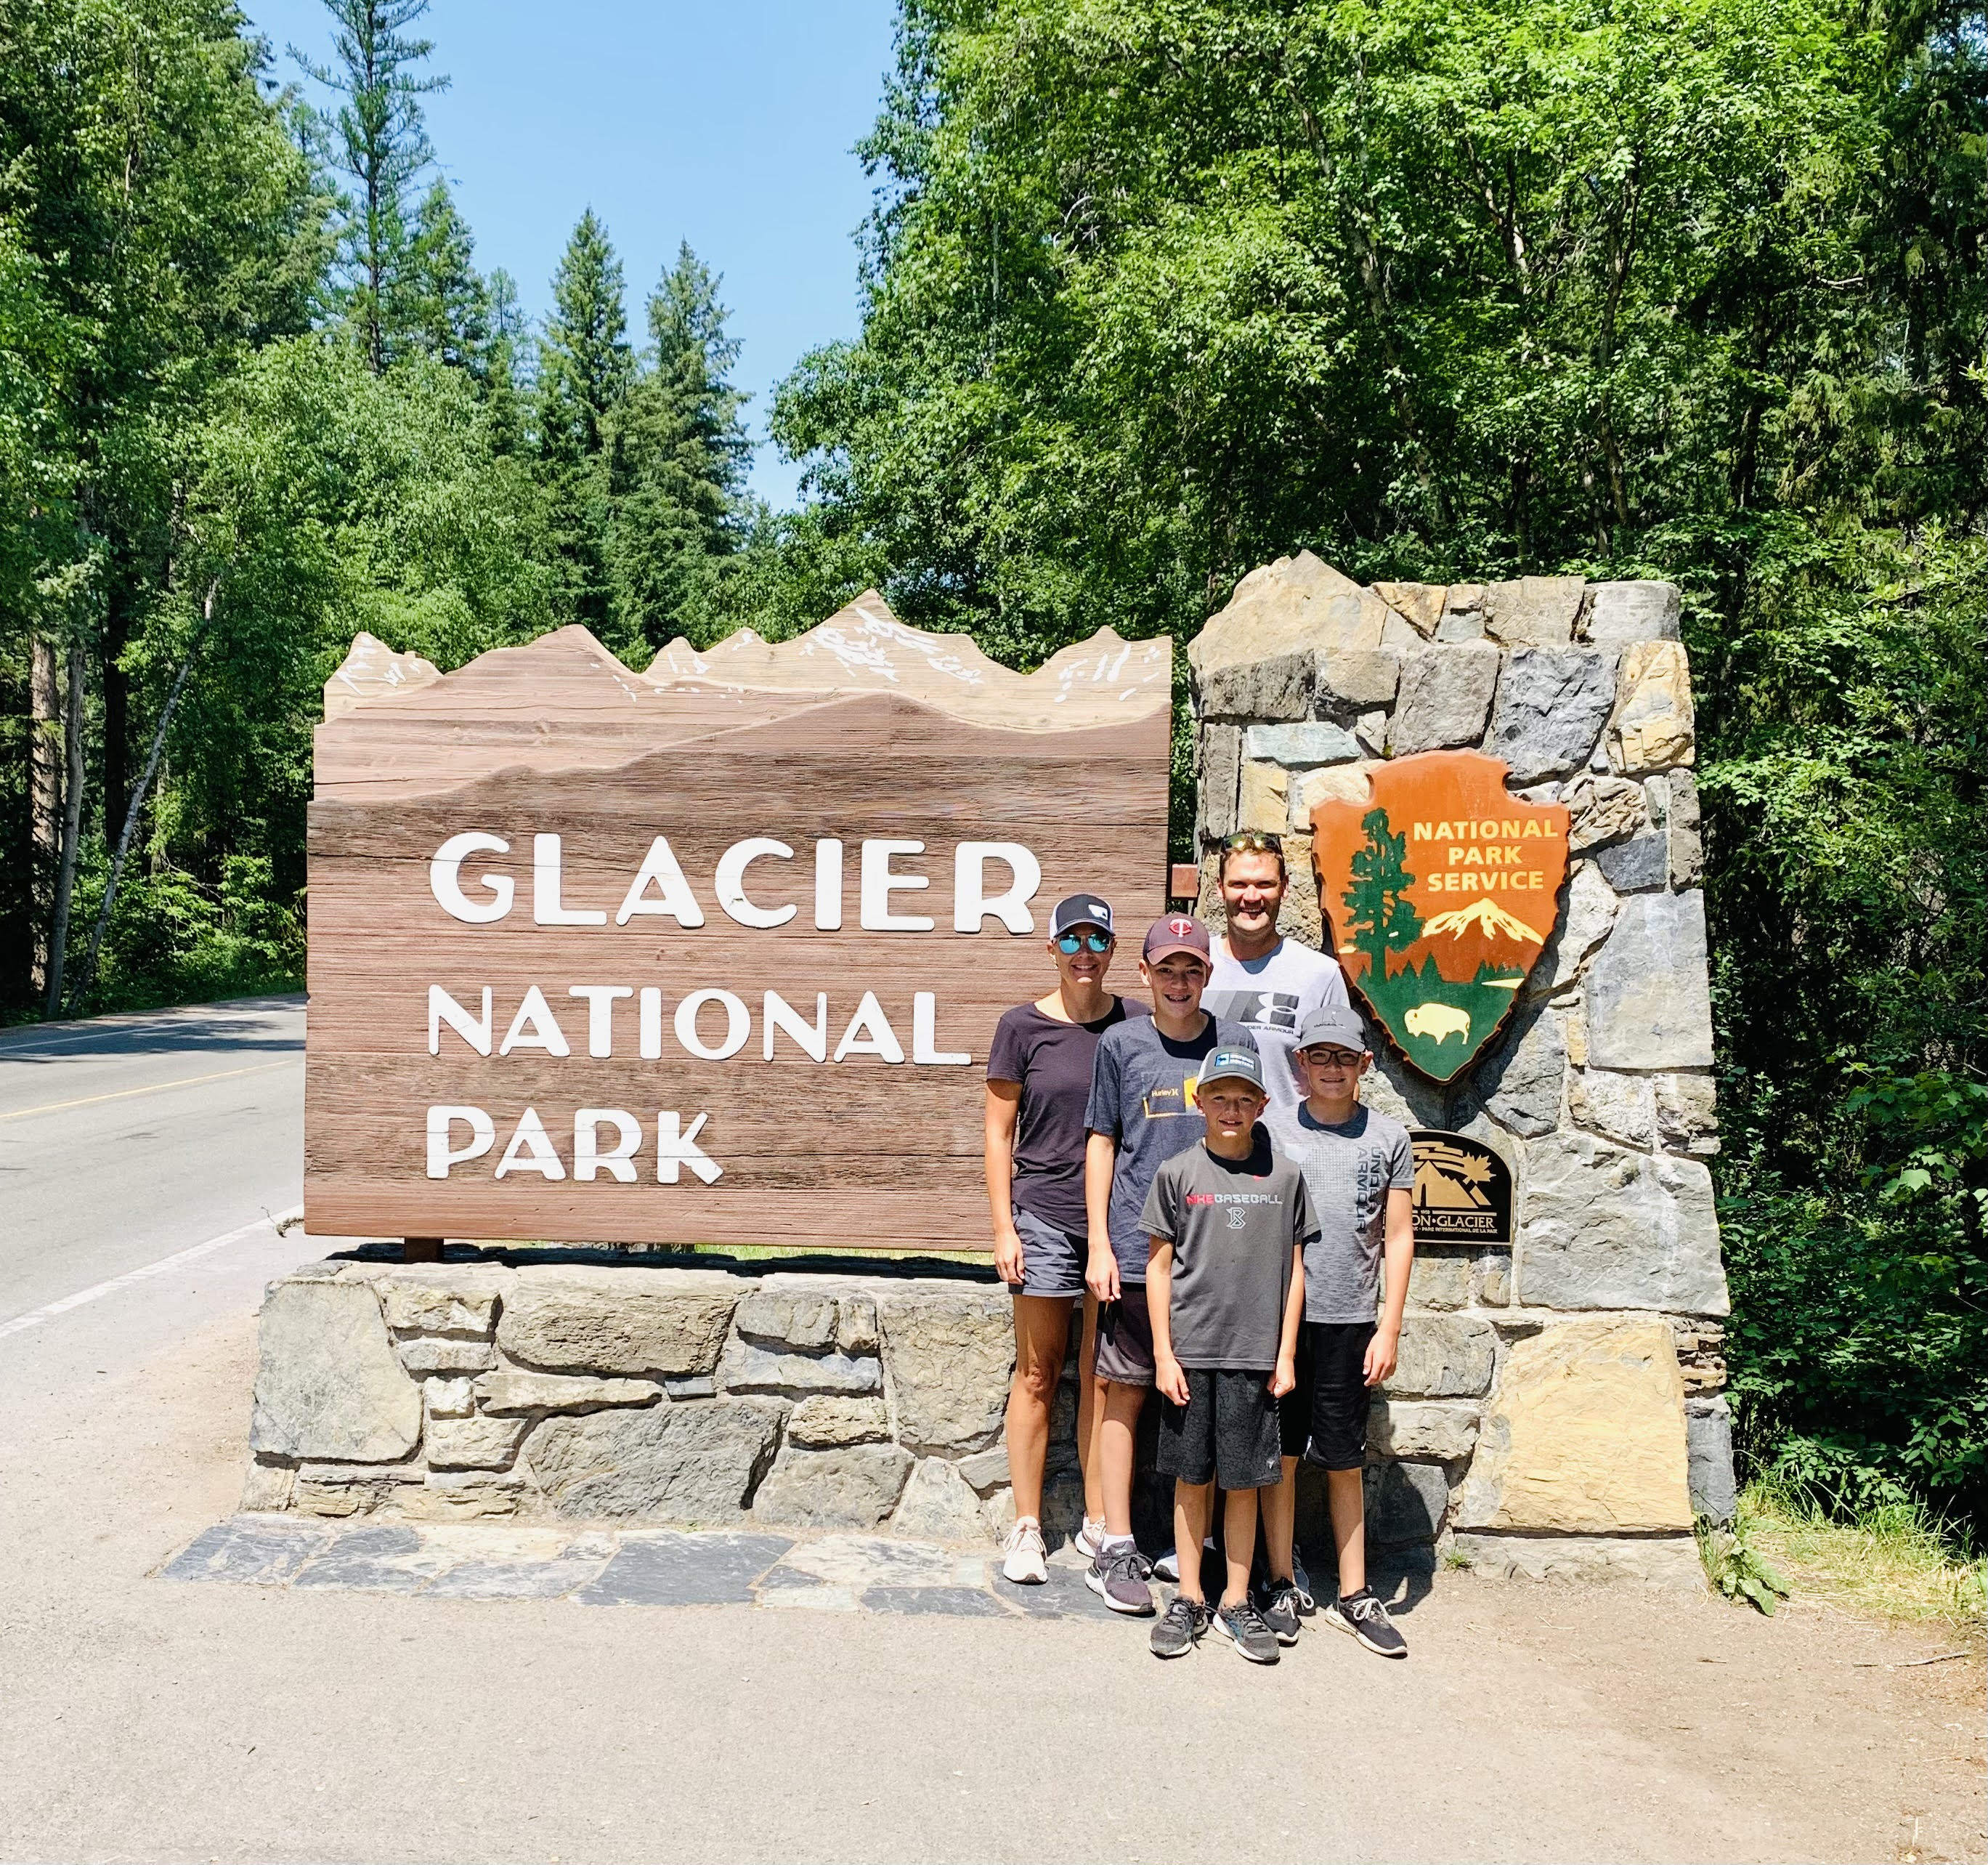 Glacier National Park sign; one of the best stops on Going to the Sun Road